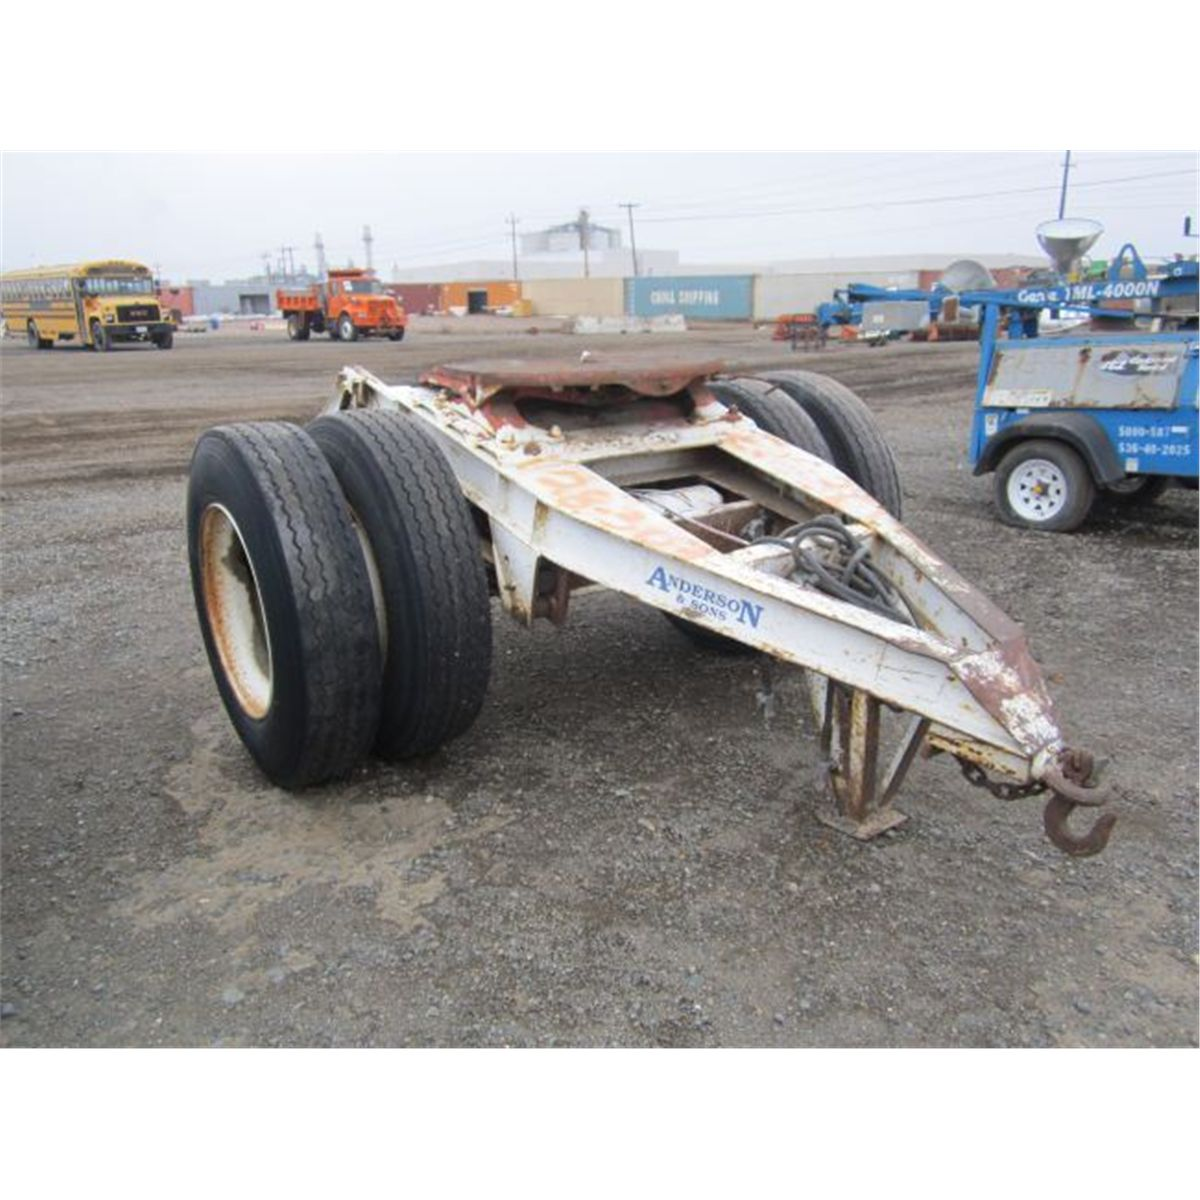 Bumper Pull Fifth Wheel Hitch >> 5th Wheel Dolly Pictures to Pin on Pinterest - PinsDaddy